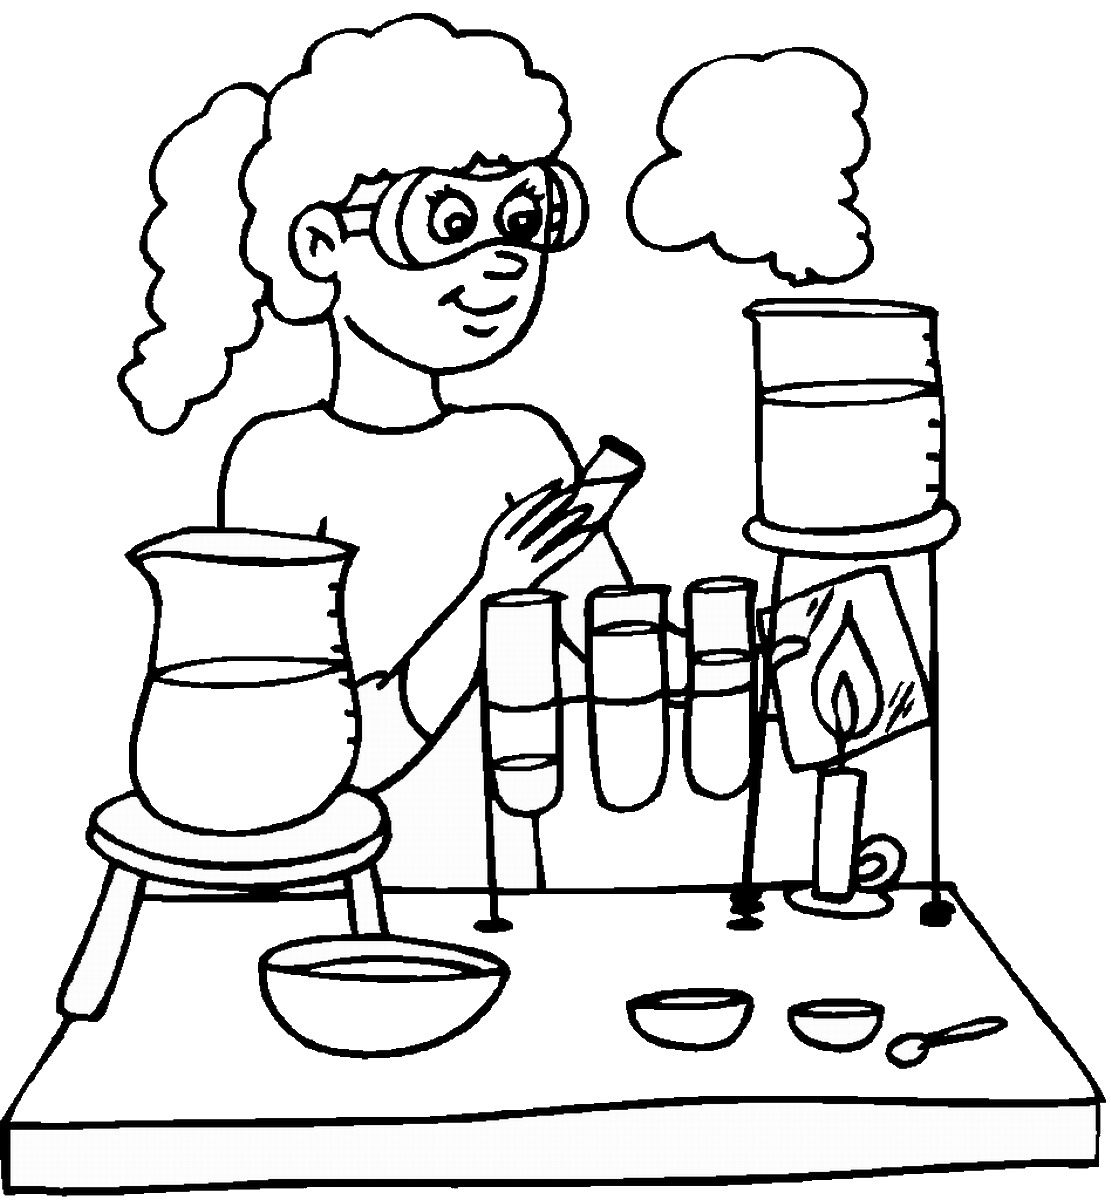 science coloring pages science coloring page getcoloringpagescom science pages coloring